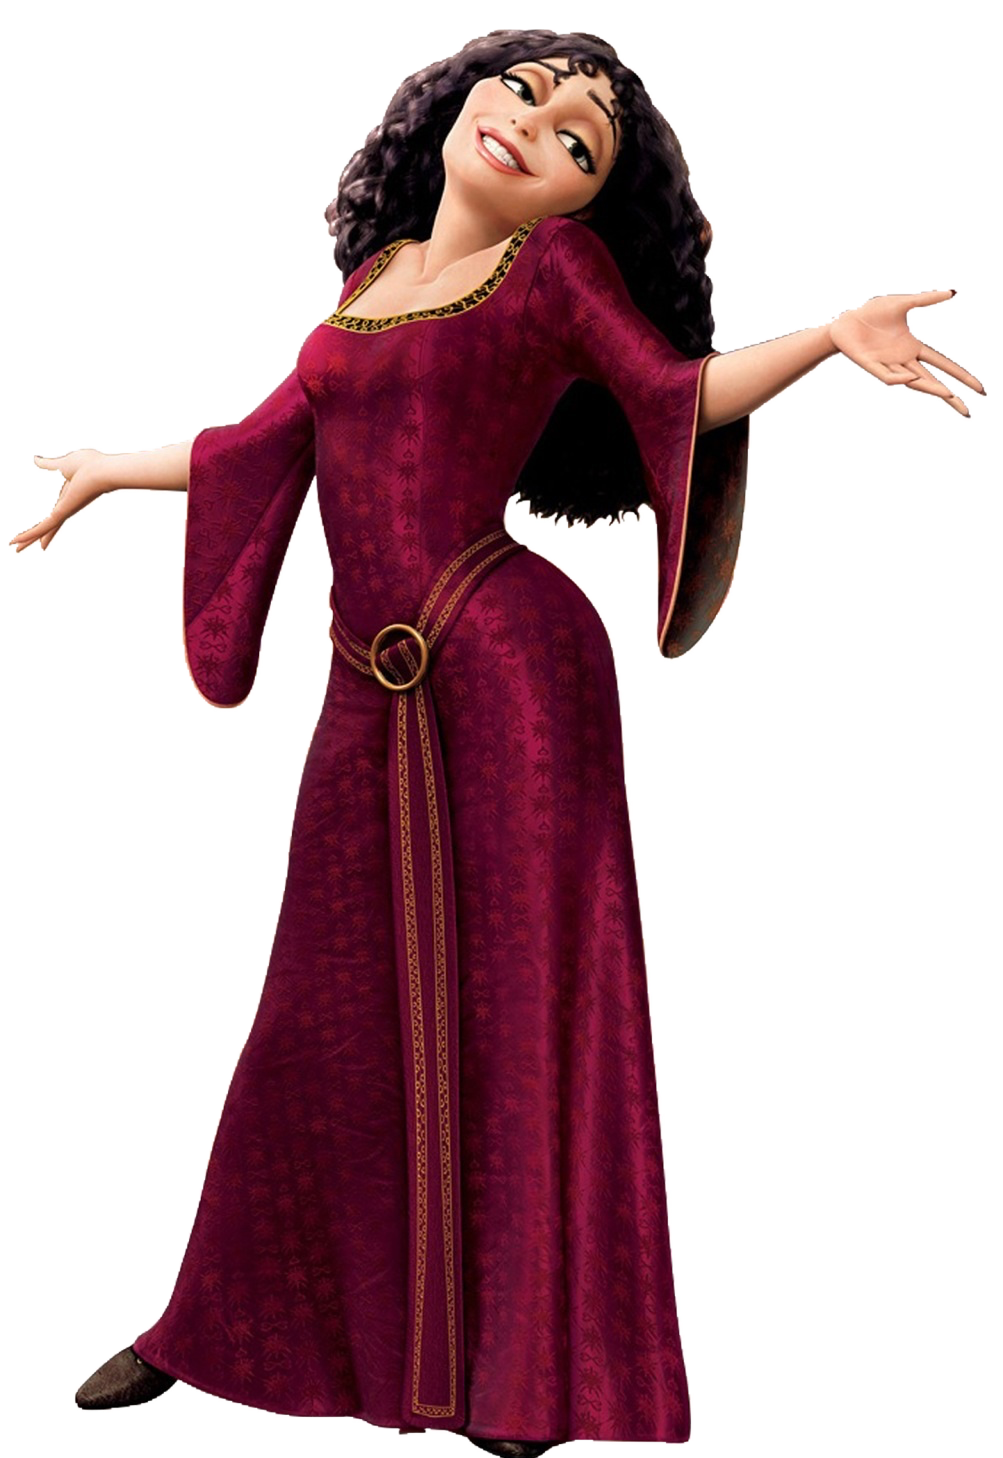 Tangled clip black and white. Mother gothel disney wiki